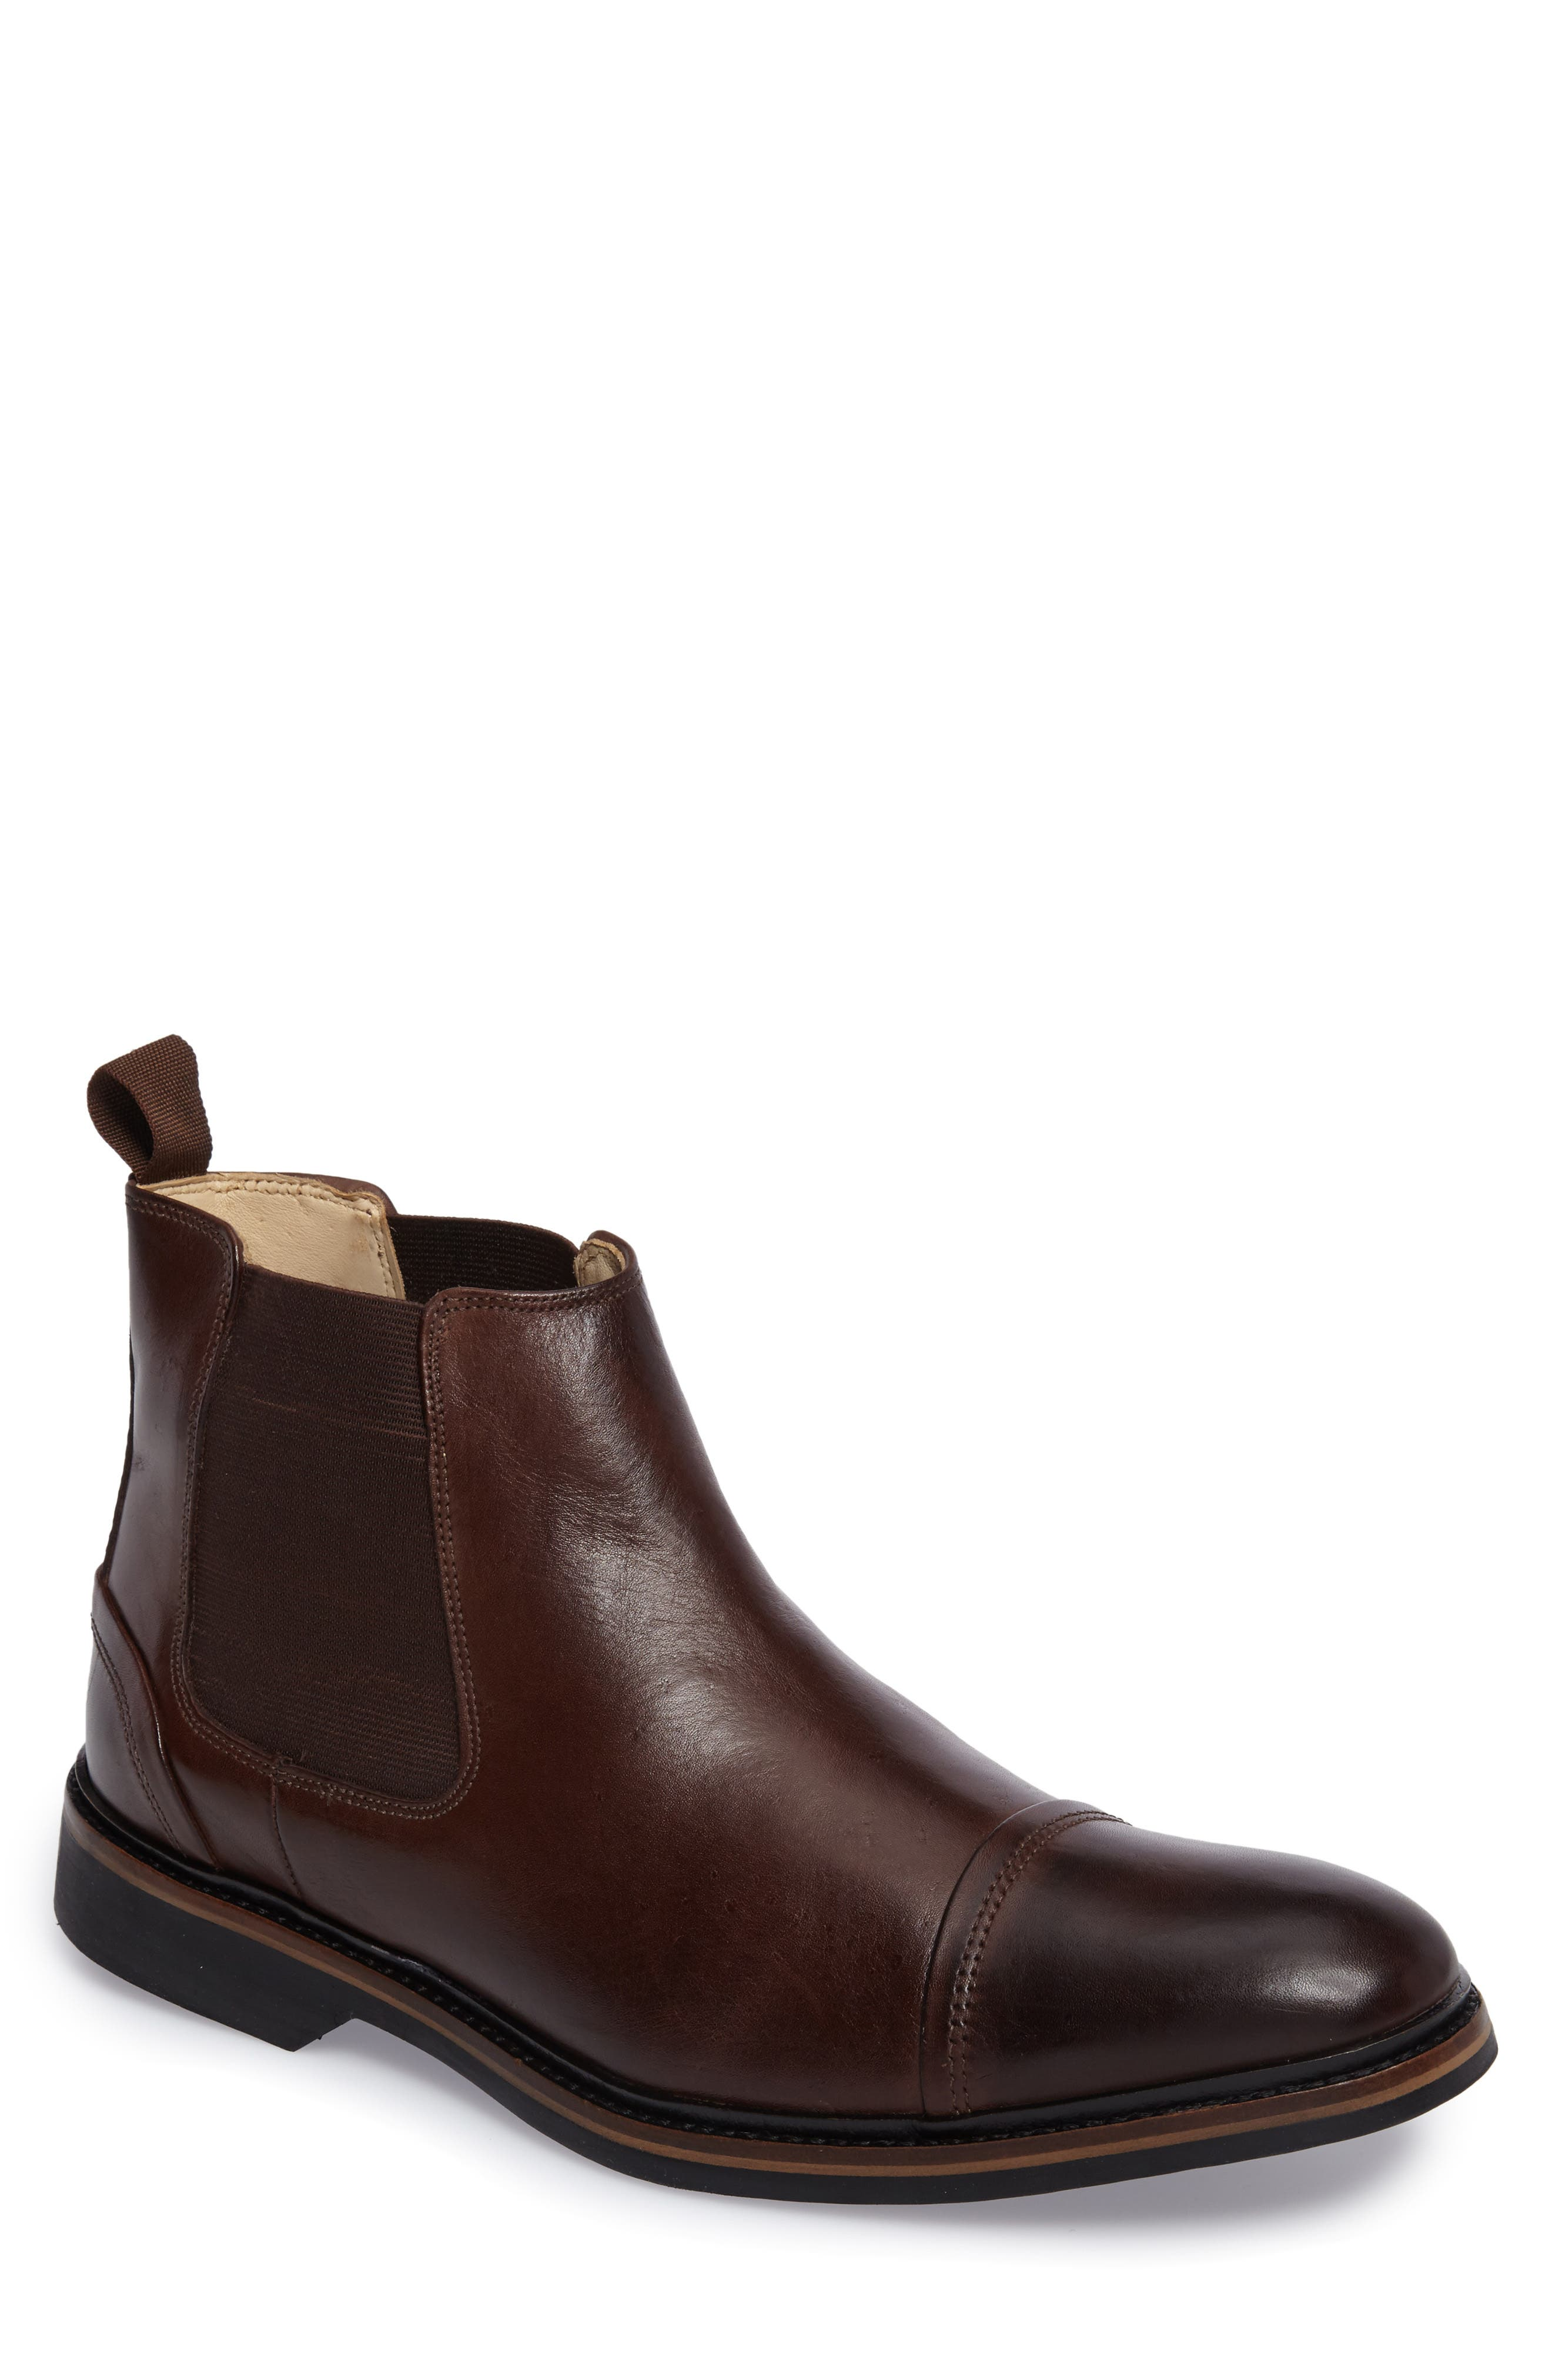 Floriano Chelsea Boot,                         Main,                         color, Touch Castanho